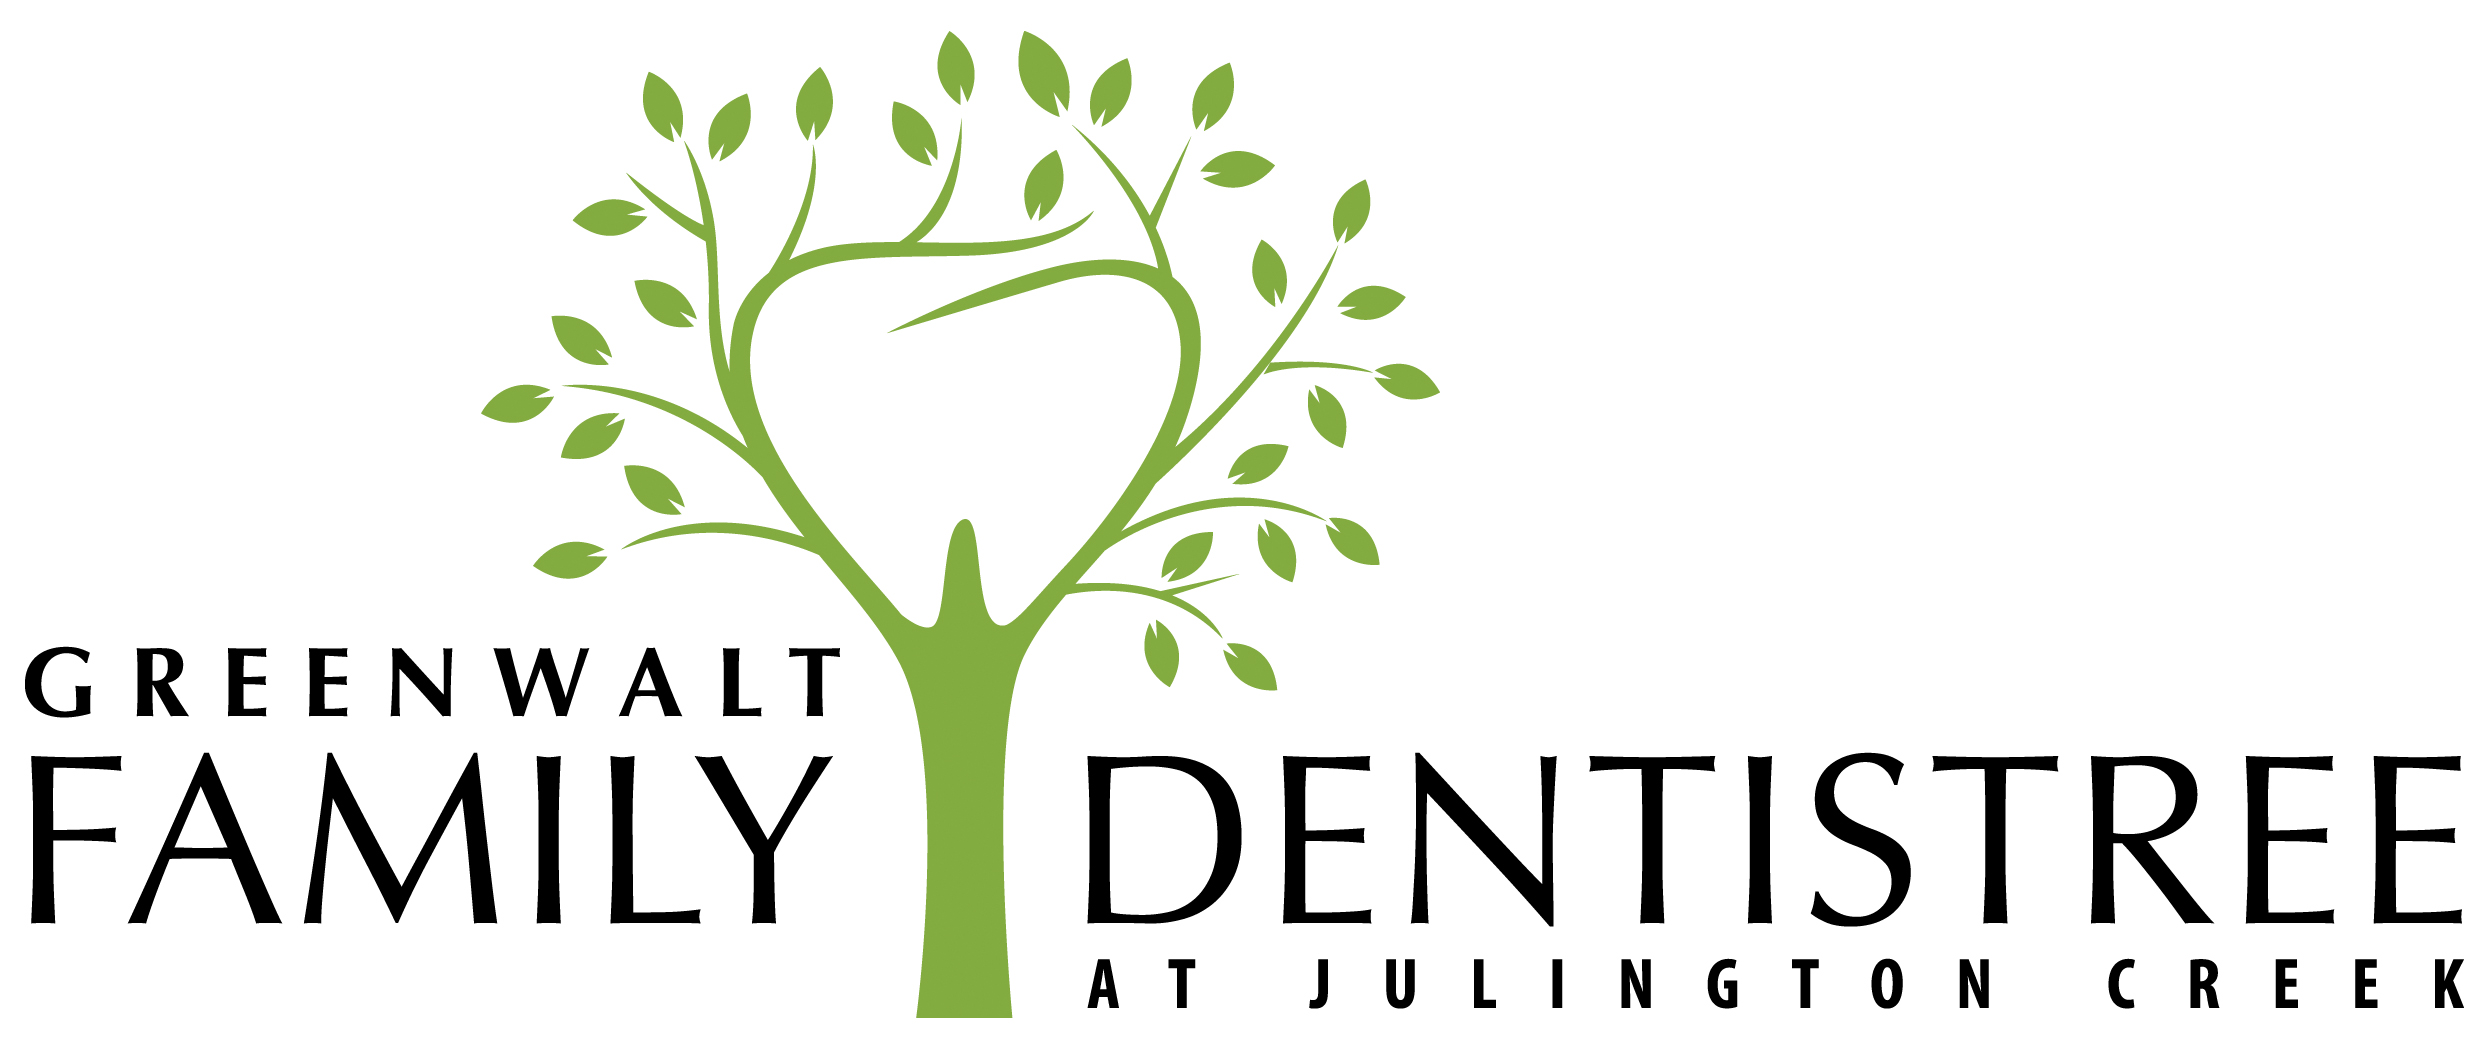 Greenwalt Family Dentistry Logo Design